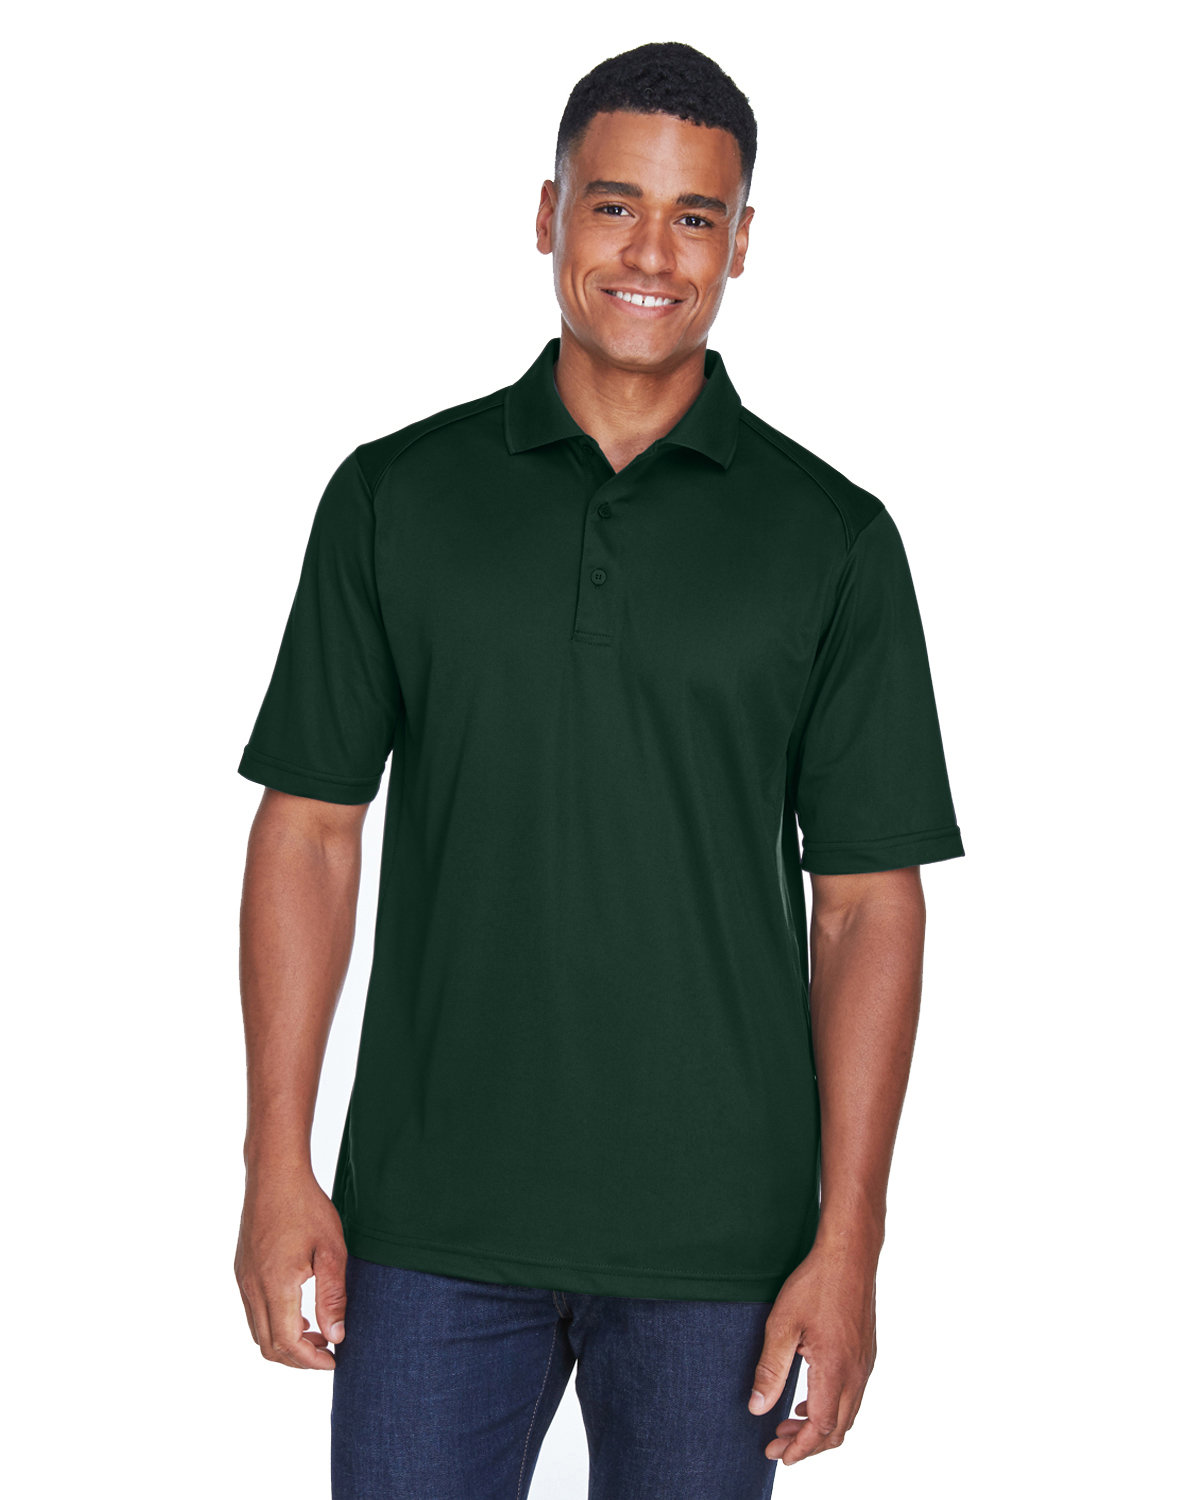 Extreme Men's Eperformance™ Shield Snag Protection Short-Sleeve Polo FOREST